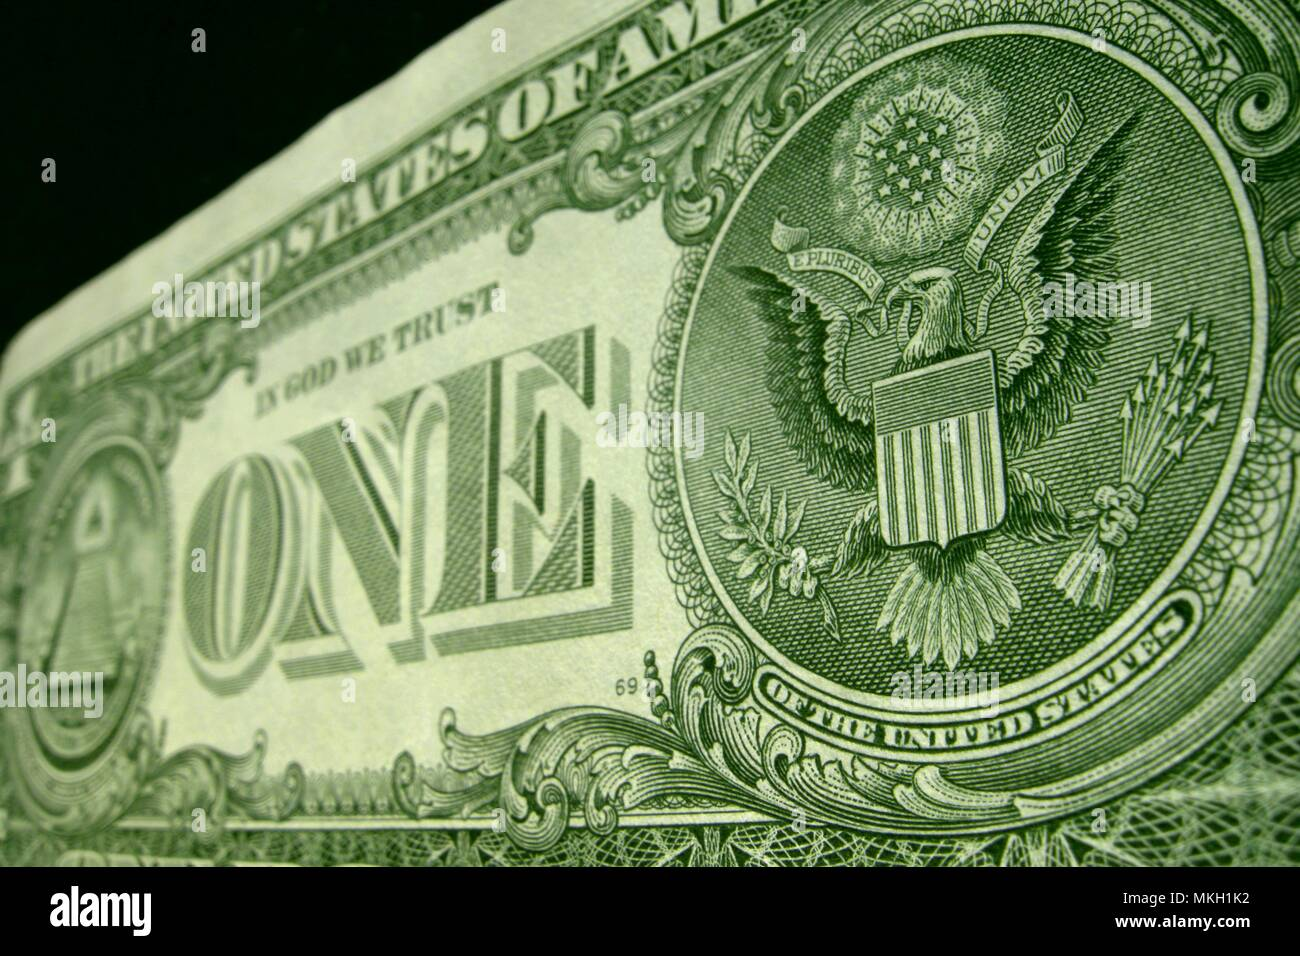 Low angle shot of the back of the US one dollar bill, featuring the American eagle. - Stock Image